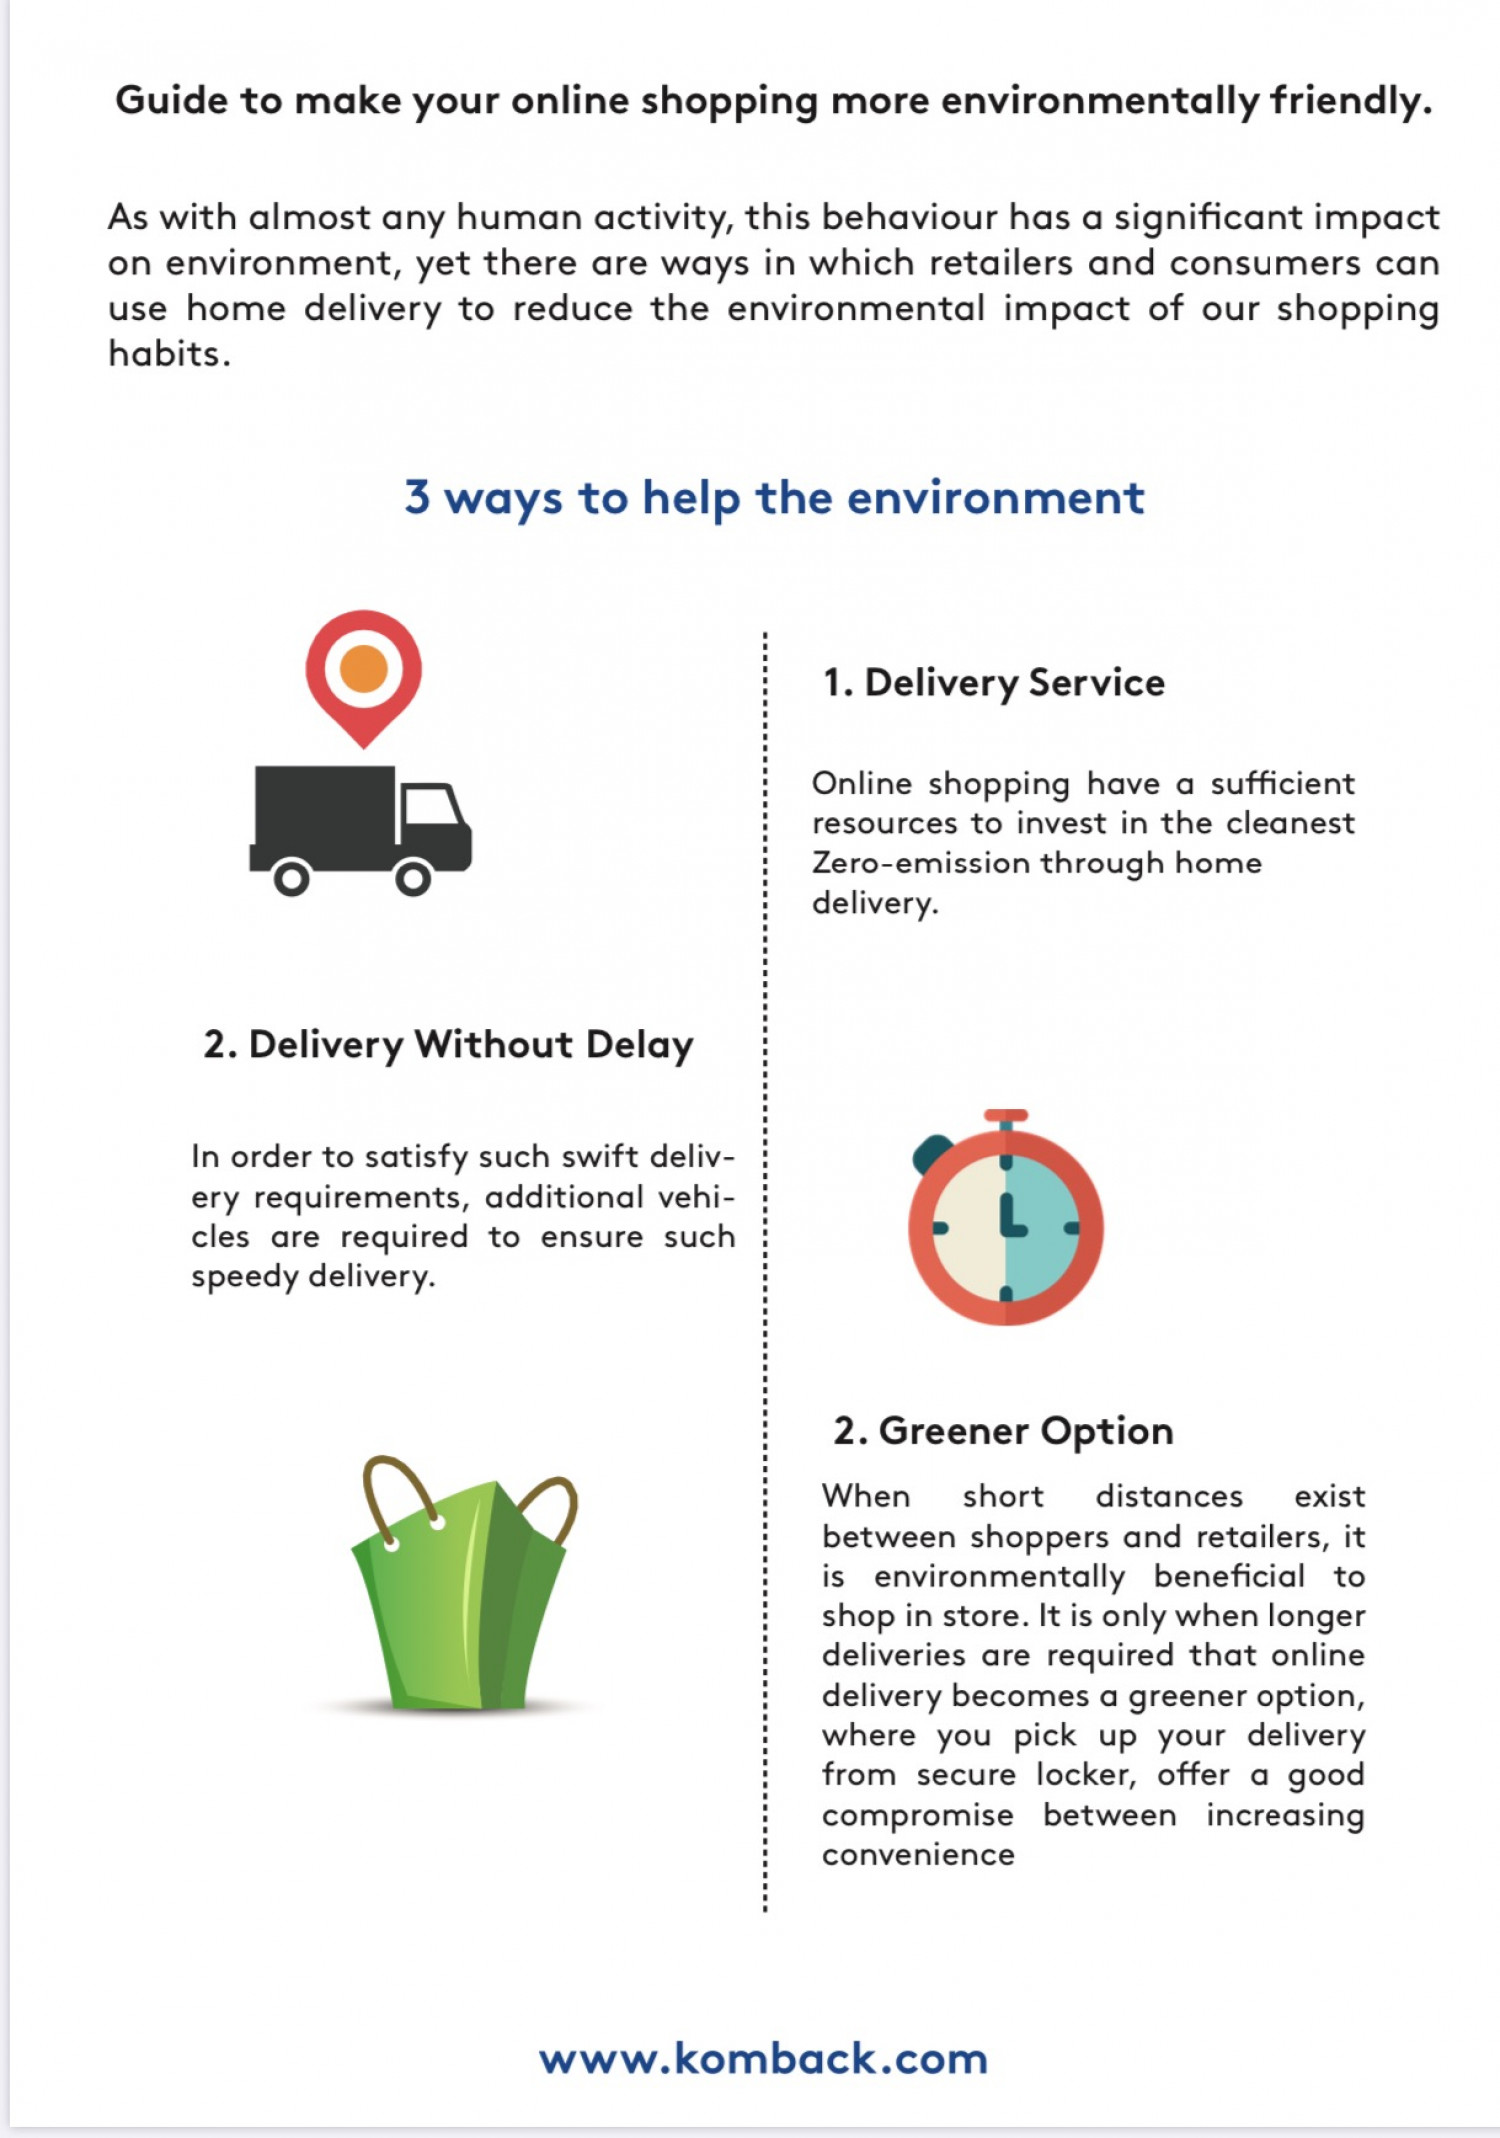 Guide to making online shopping environmental friendly Infographic